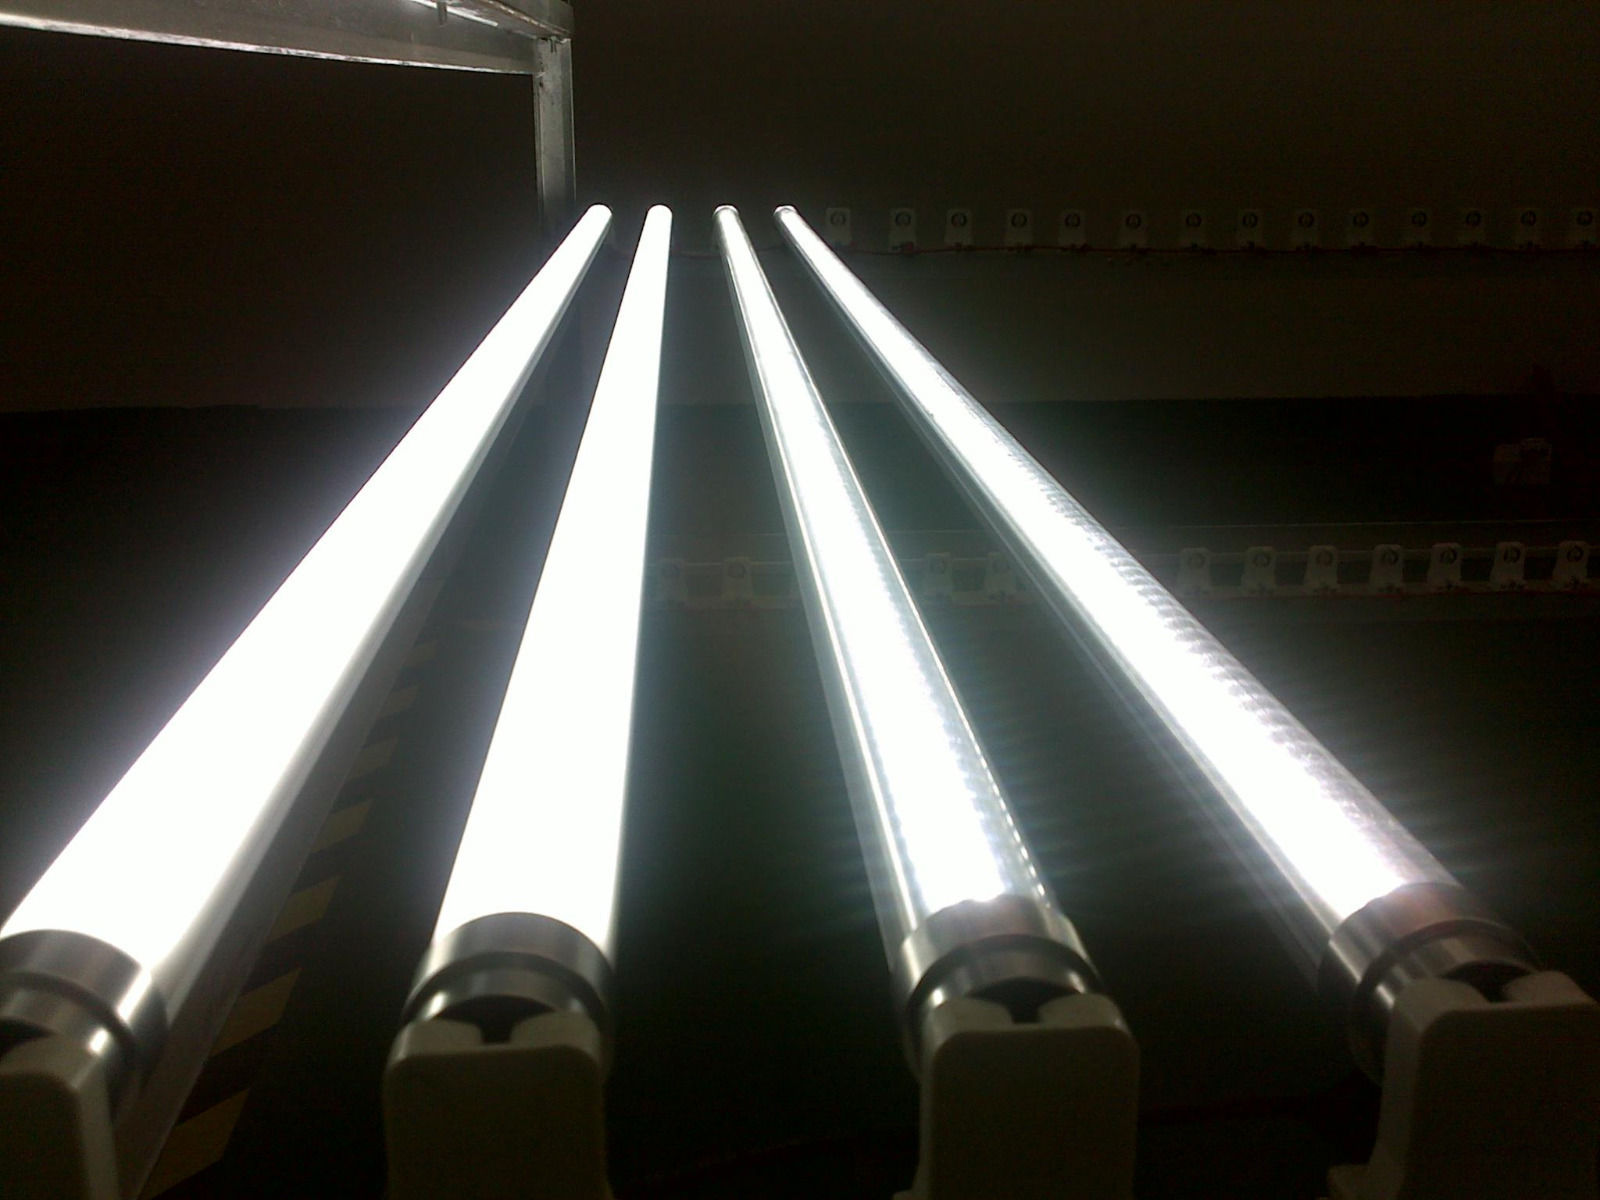 4 Ft 8 Ft Electronic Ballast T8 Tube Lighting